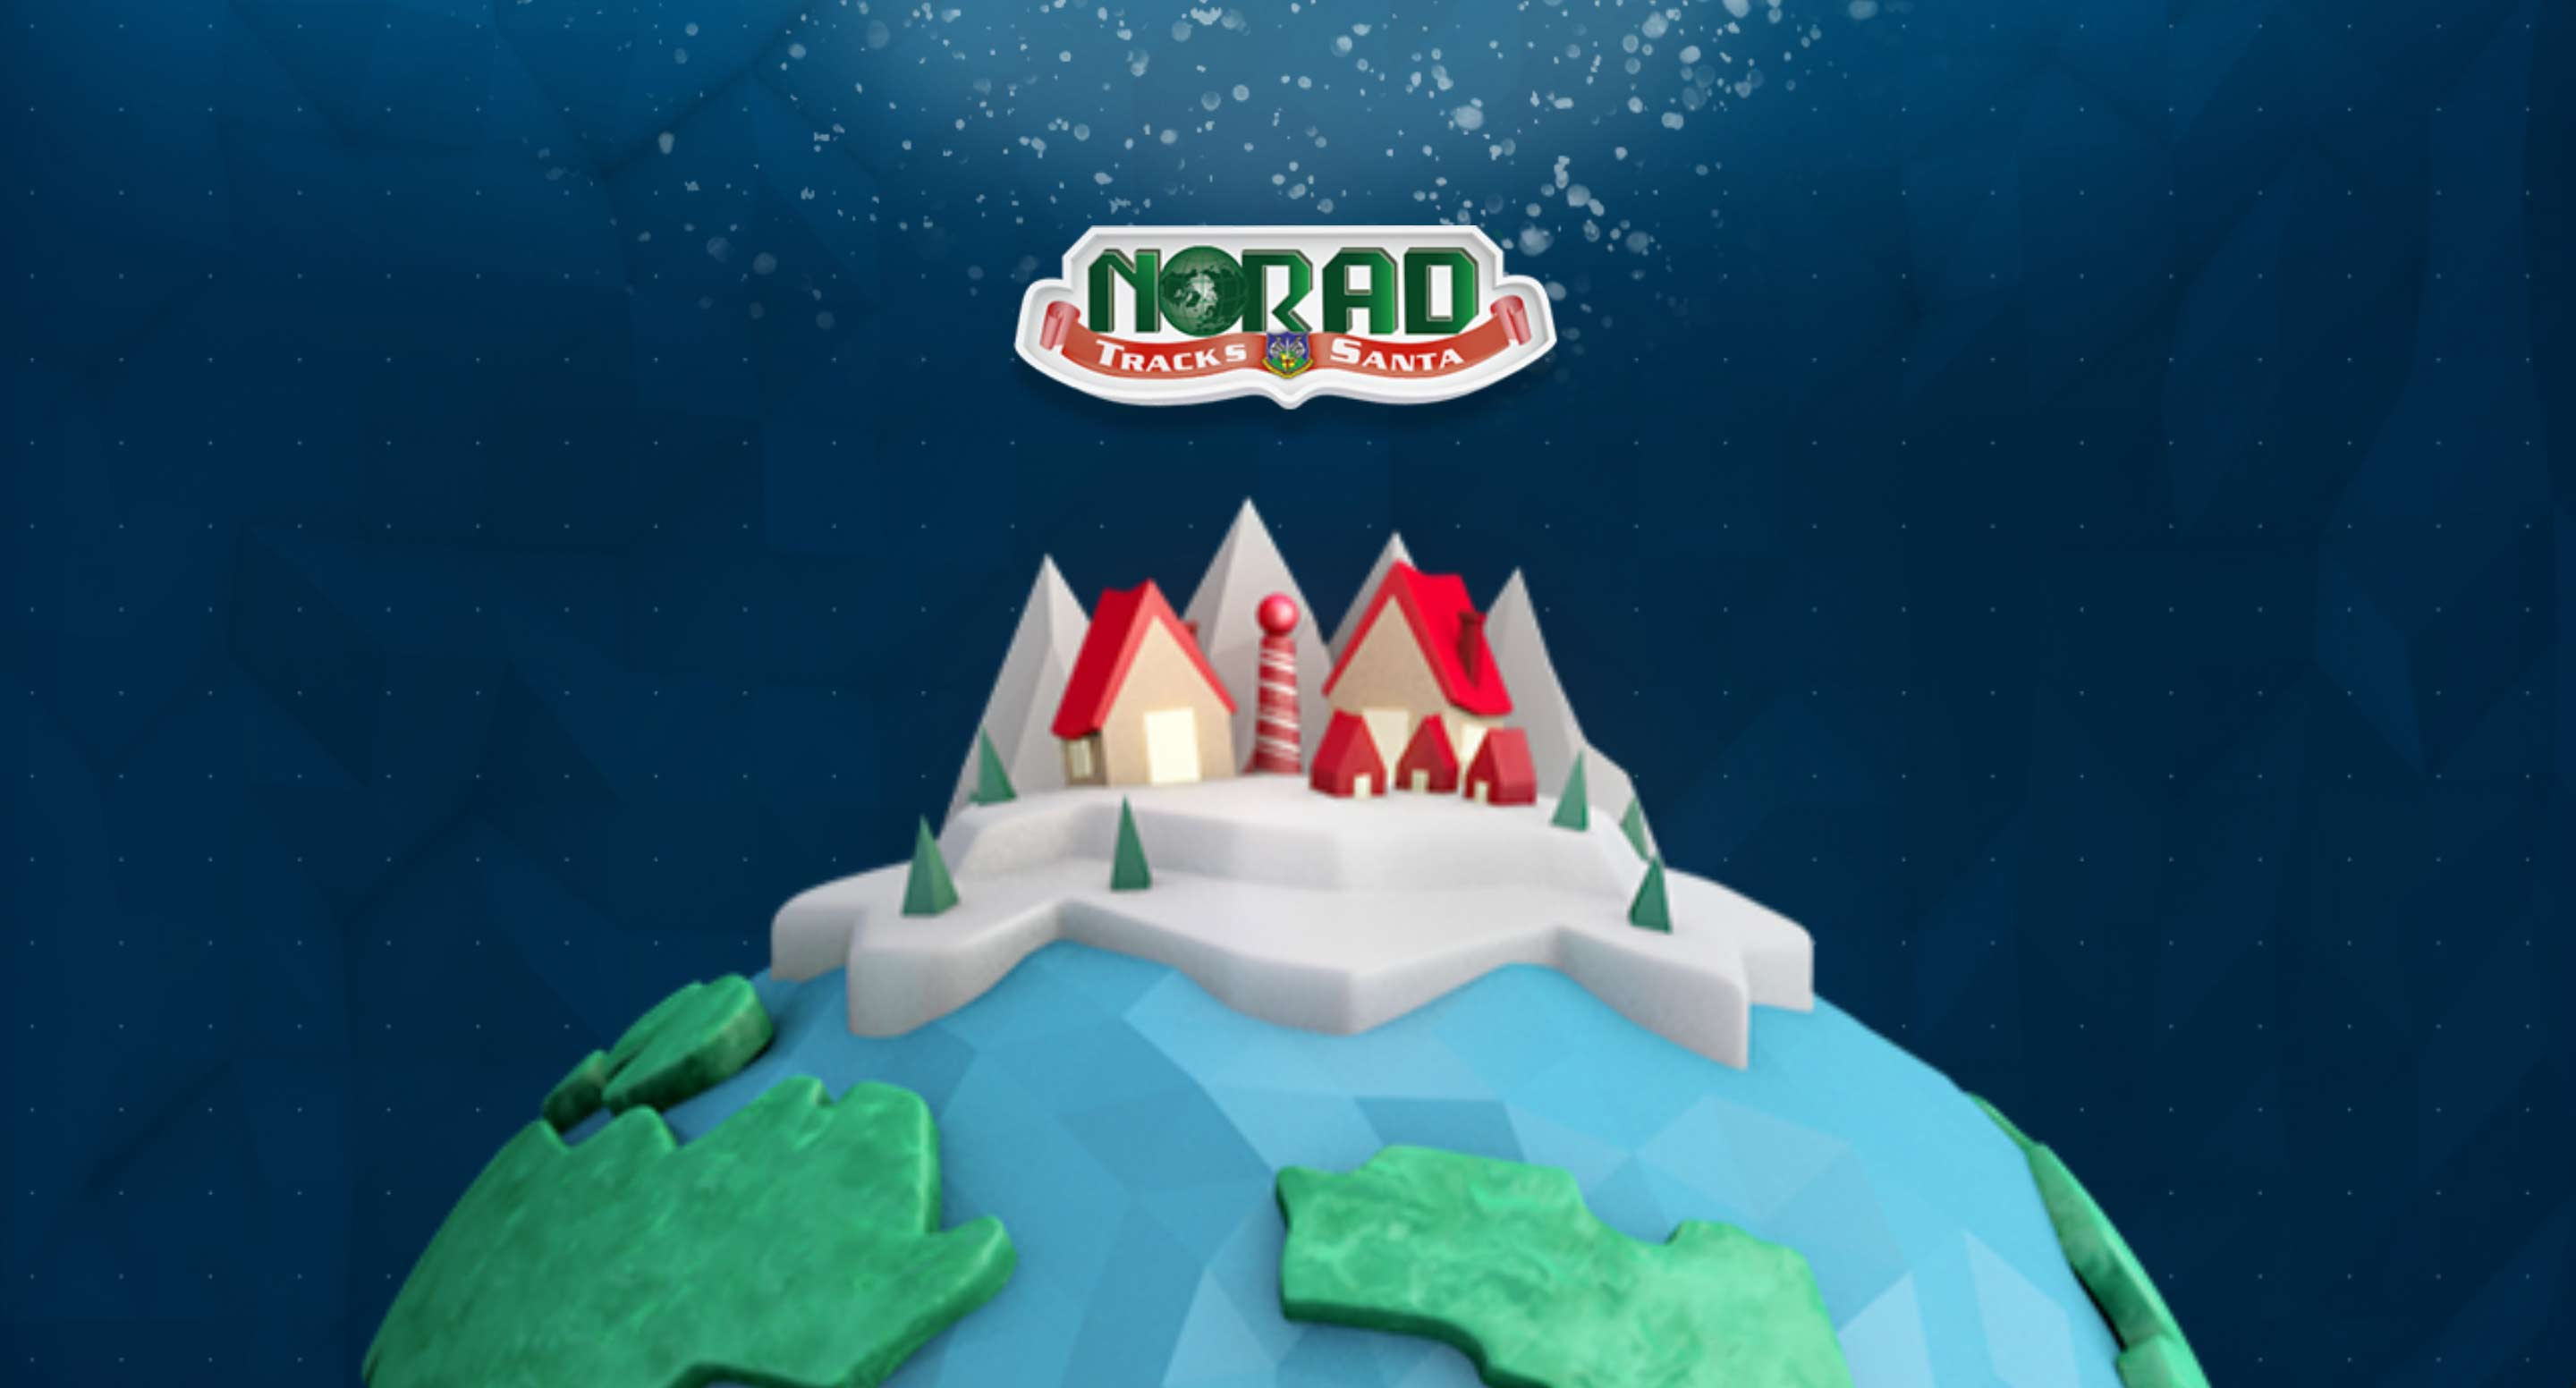 NORAD Tracks Santa with Windows Azure, Bing Maps and Windows 8